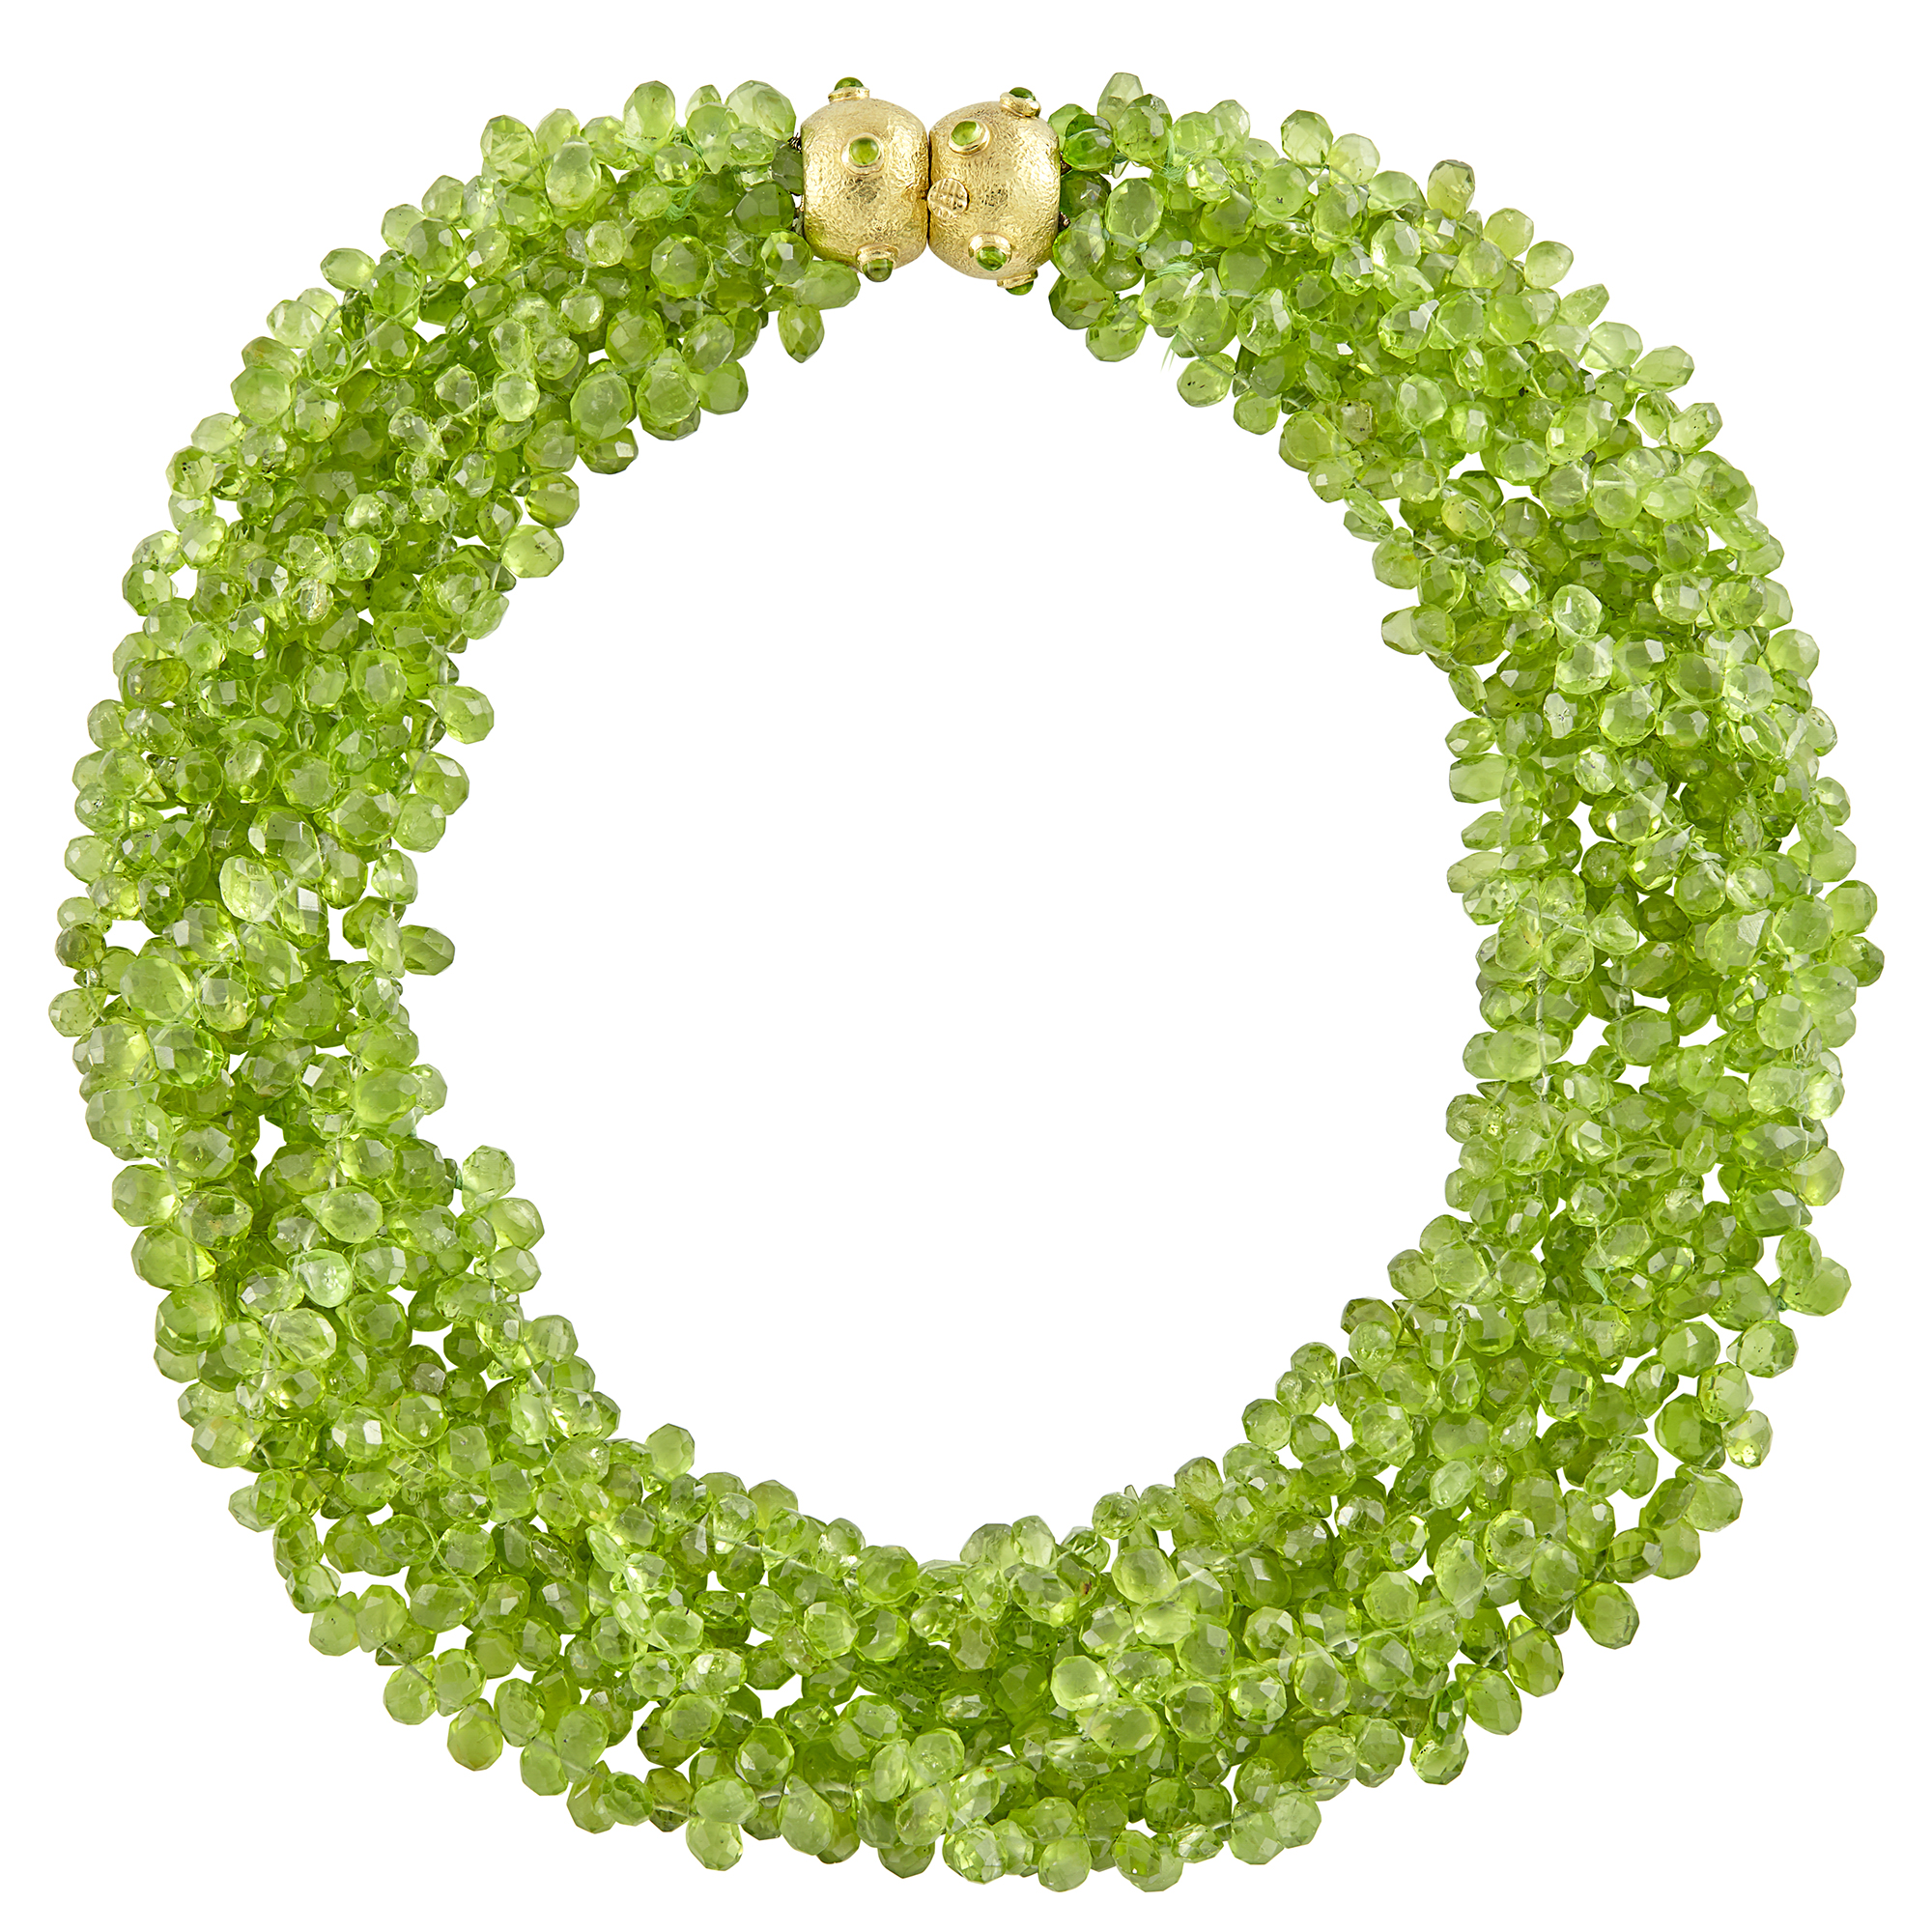 Lot image - Seven Strand Peridot Briolette Bead Torsade Necklace with Hammered Gold and Cabochon Peridot Clasp